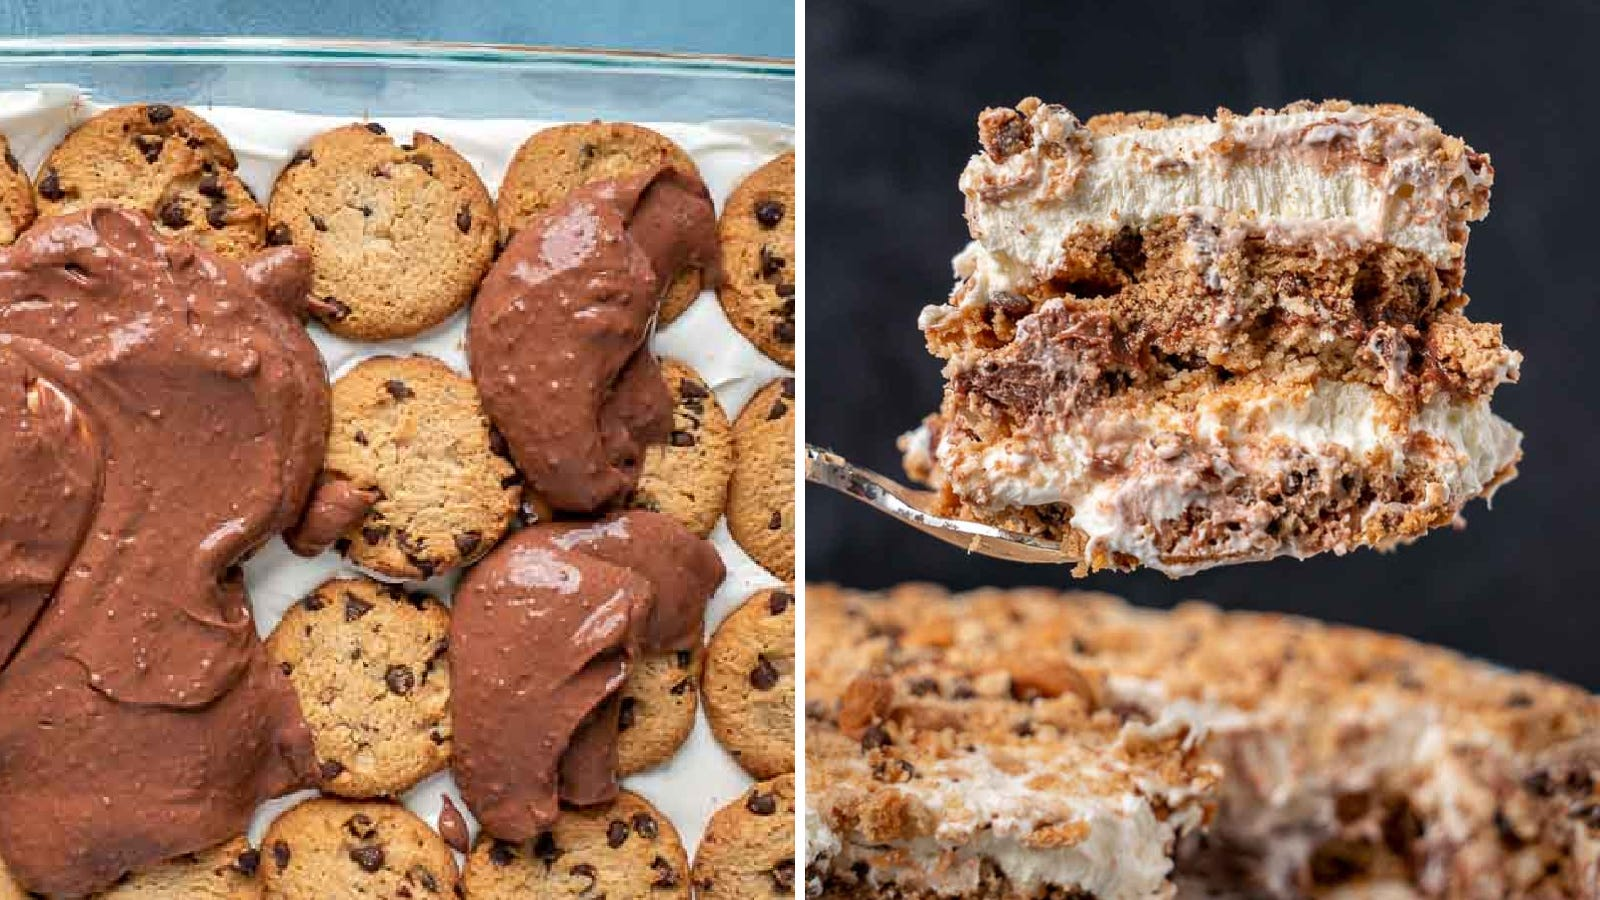 Two imeages featuring a chocolate chip icebox cake. The left image is of someone adding chocolate pudding over a cookies layer and the right image is a large cut out peice of the cake.